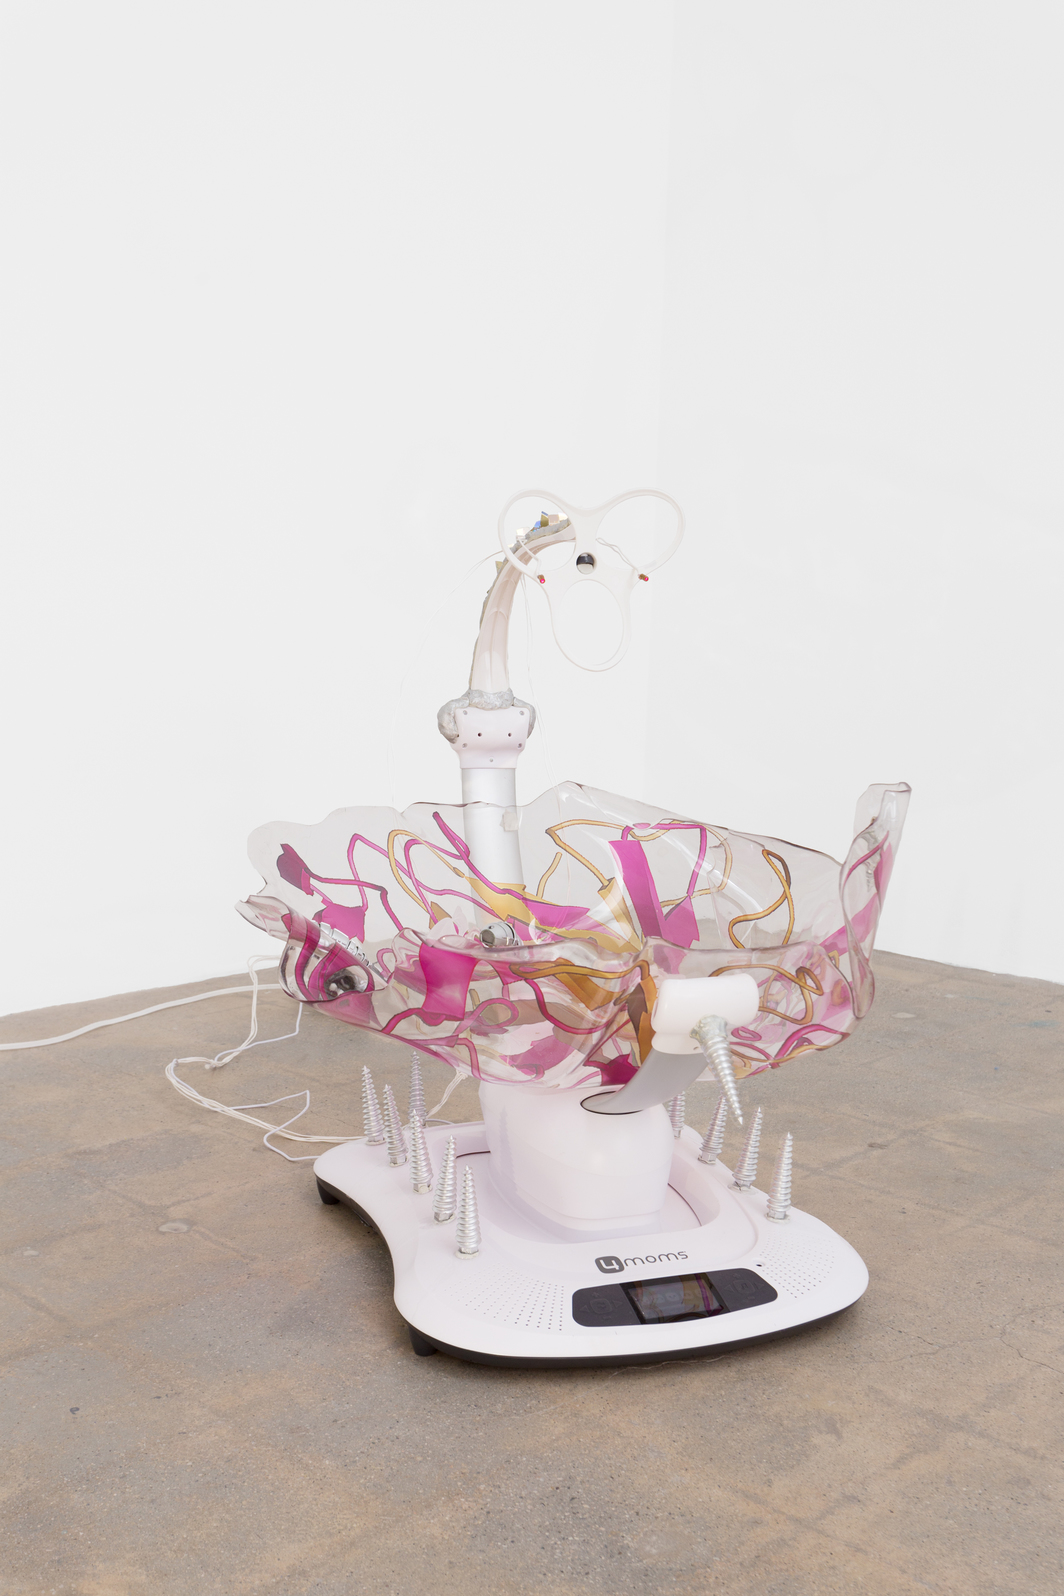 "Katja Novitskova, Mamaroo (Storm Time 3D Embryo),  2016, electronic baby swing, polyurethane resin, epoxy foam  clay, wall fixtures, robotic bugs,  3-D print, 31 x 28 x 33""."